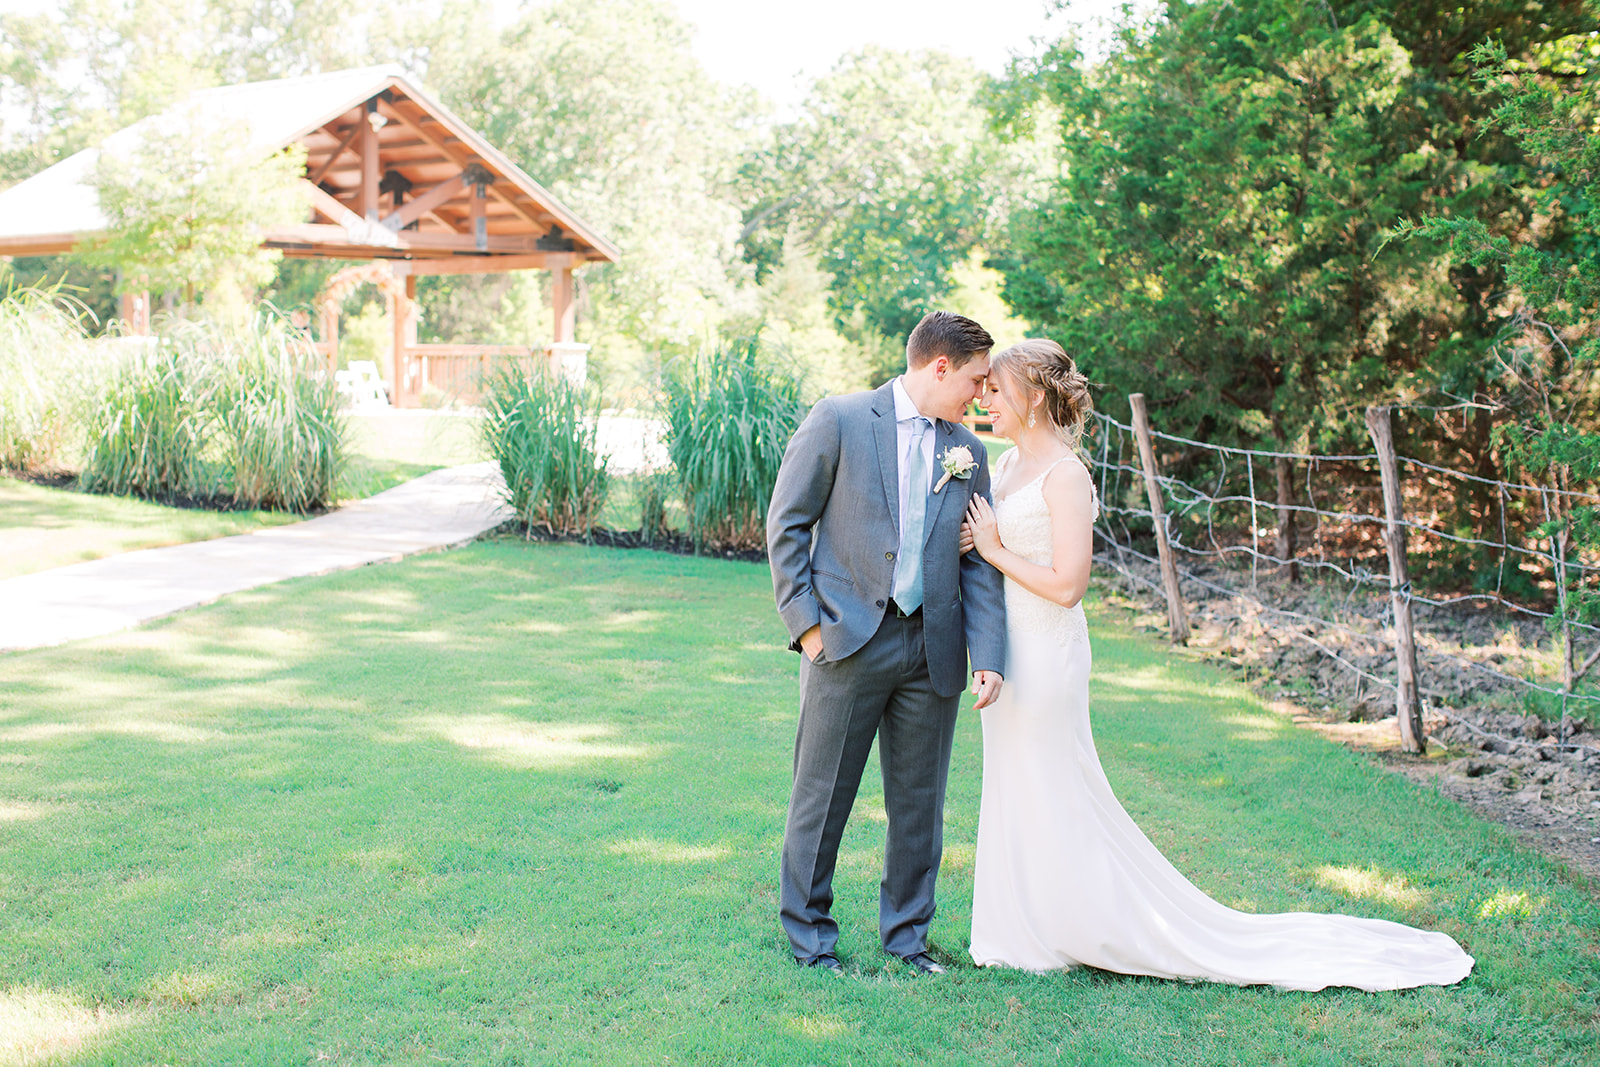 Springs Venue Wedding: | Romantic blue Texas wedding at Spring Venue by Alexa Kay Events